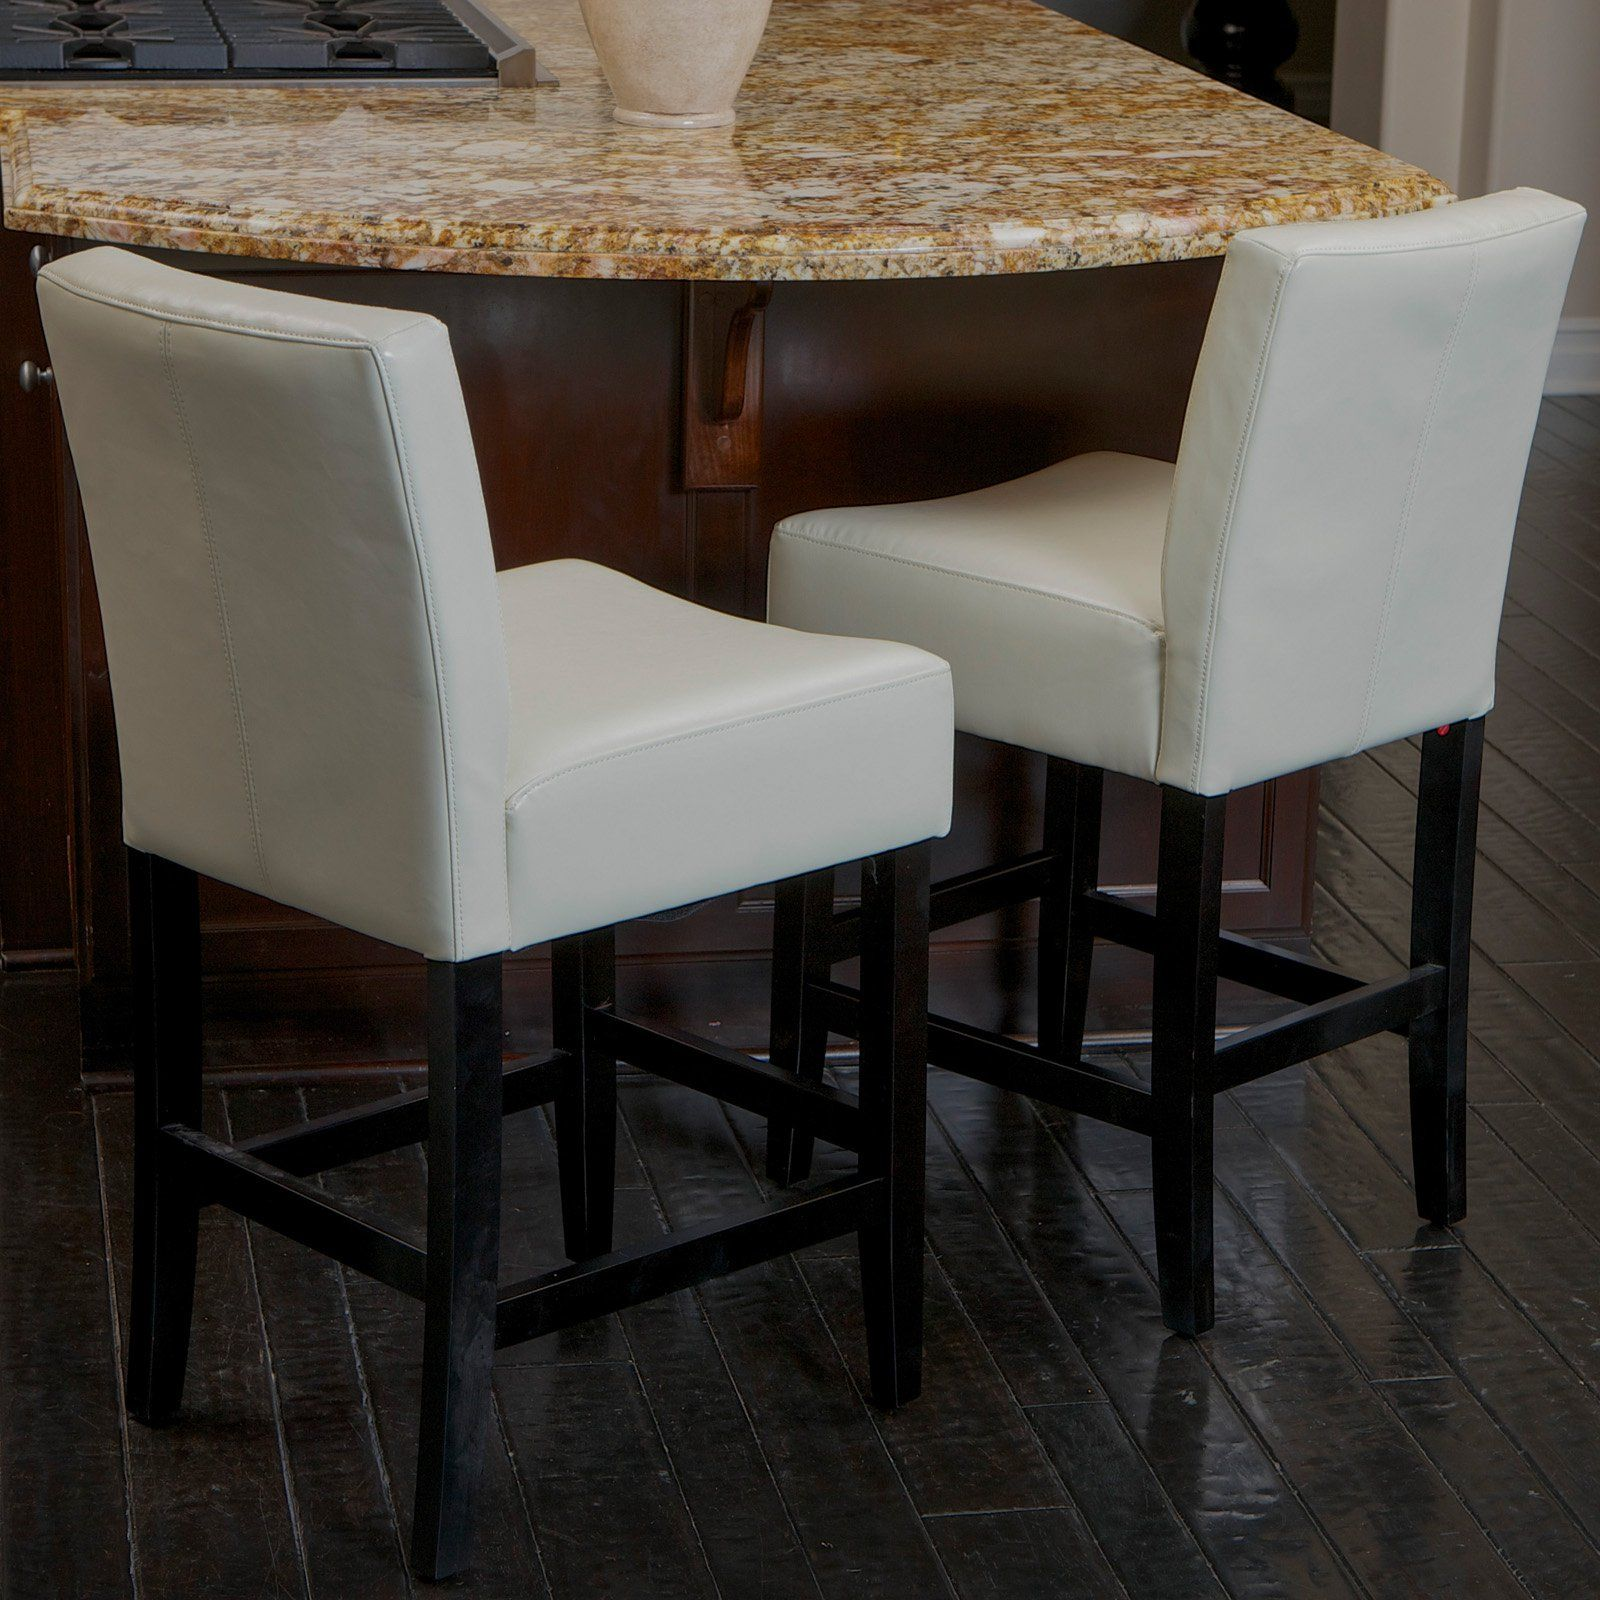 Lopez Ivory Leather Counter Stools 2 Pack In 2020 Leather